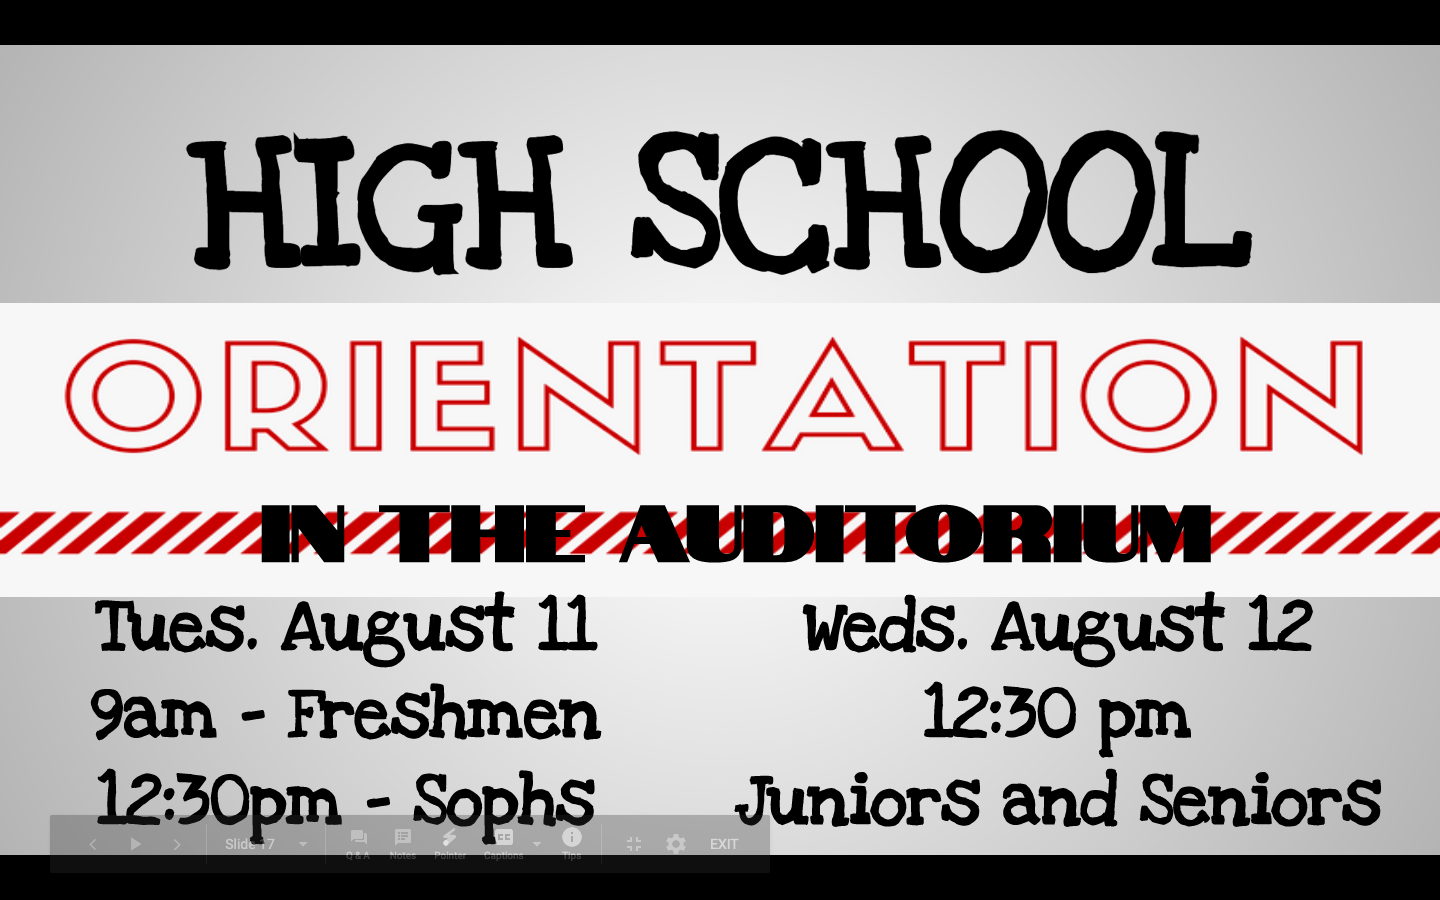 ALL STUDENTS SHOULD ATTEND